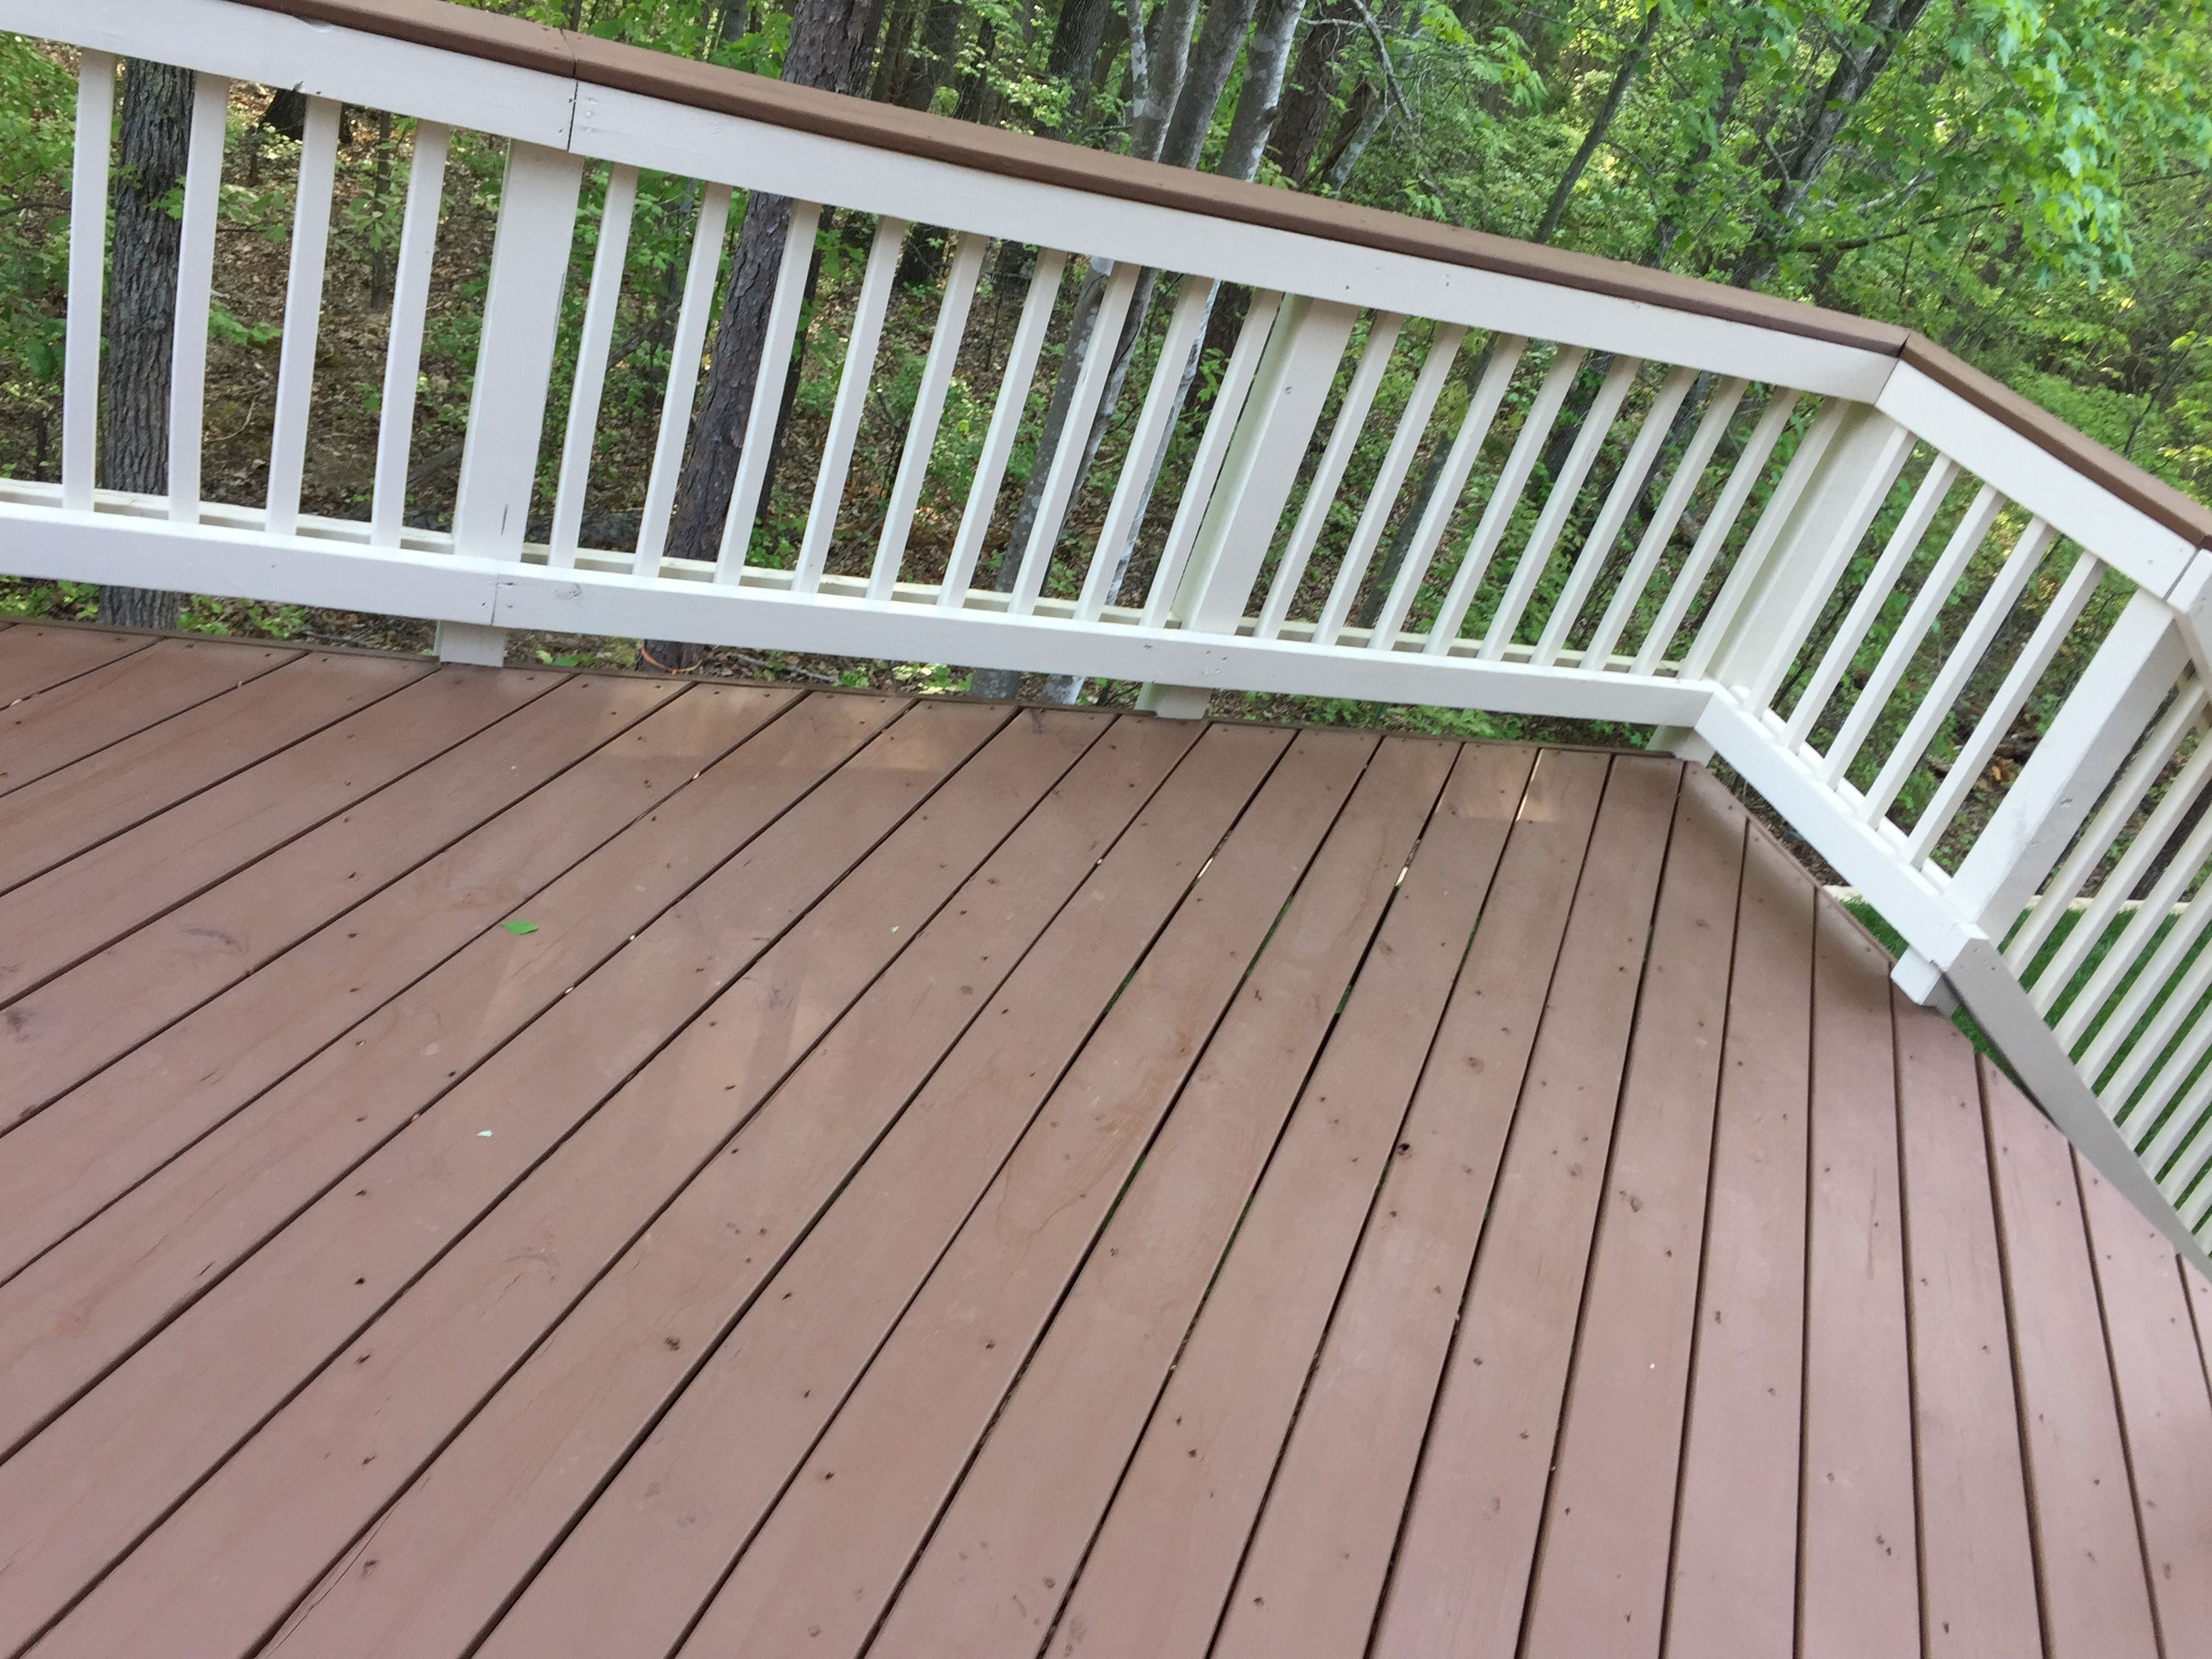 Sherwin Williams Deck Stain In Pinecone And Rail Paint In Navajo White Two Toned Deck Color Idea